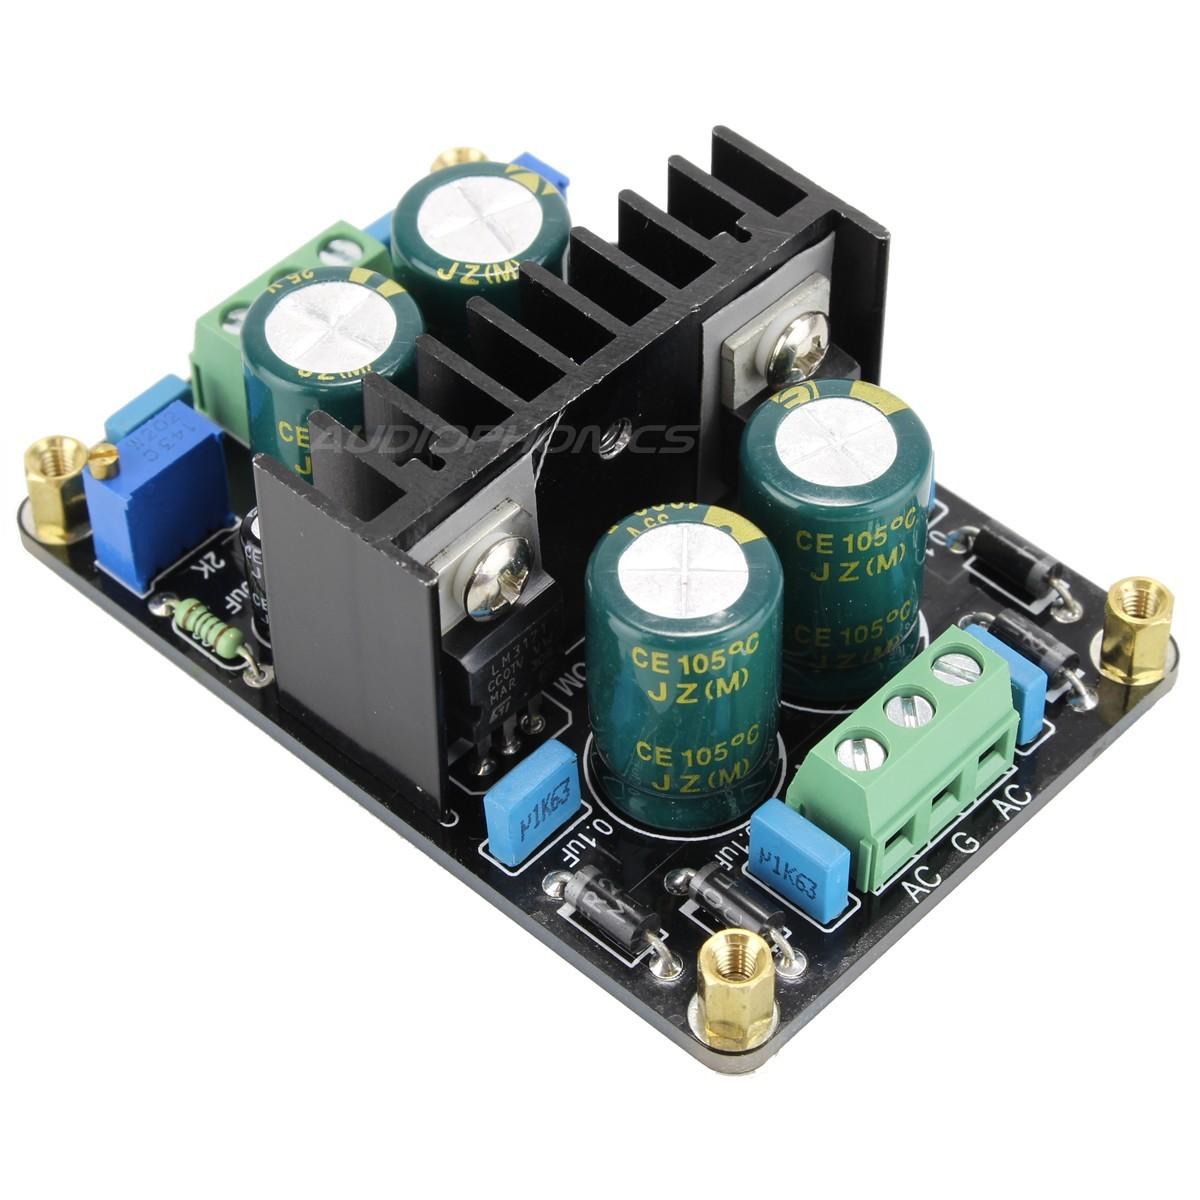 Regulated Linear Power Supply AC-DC LM317 / LM337 24V 1A